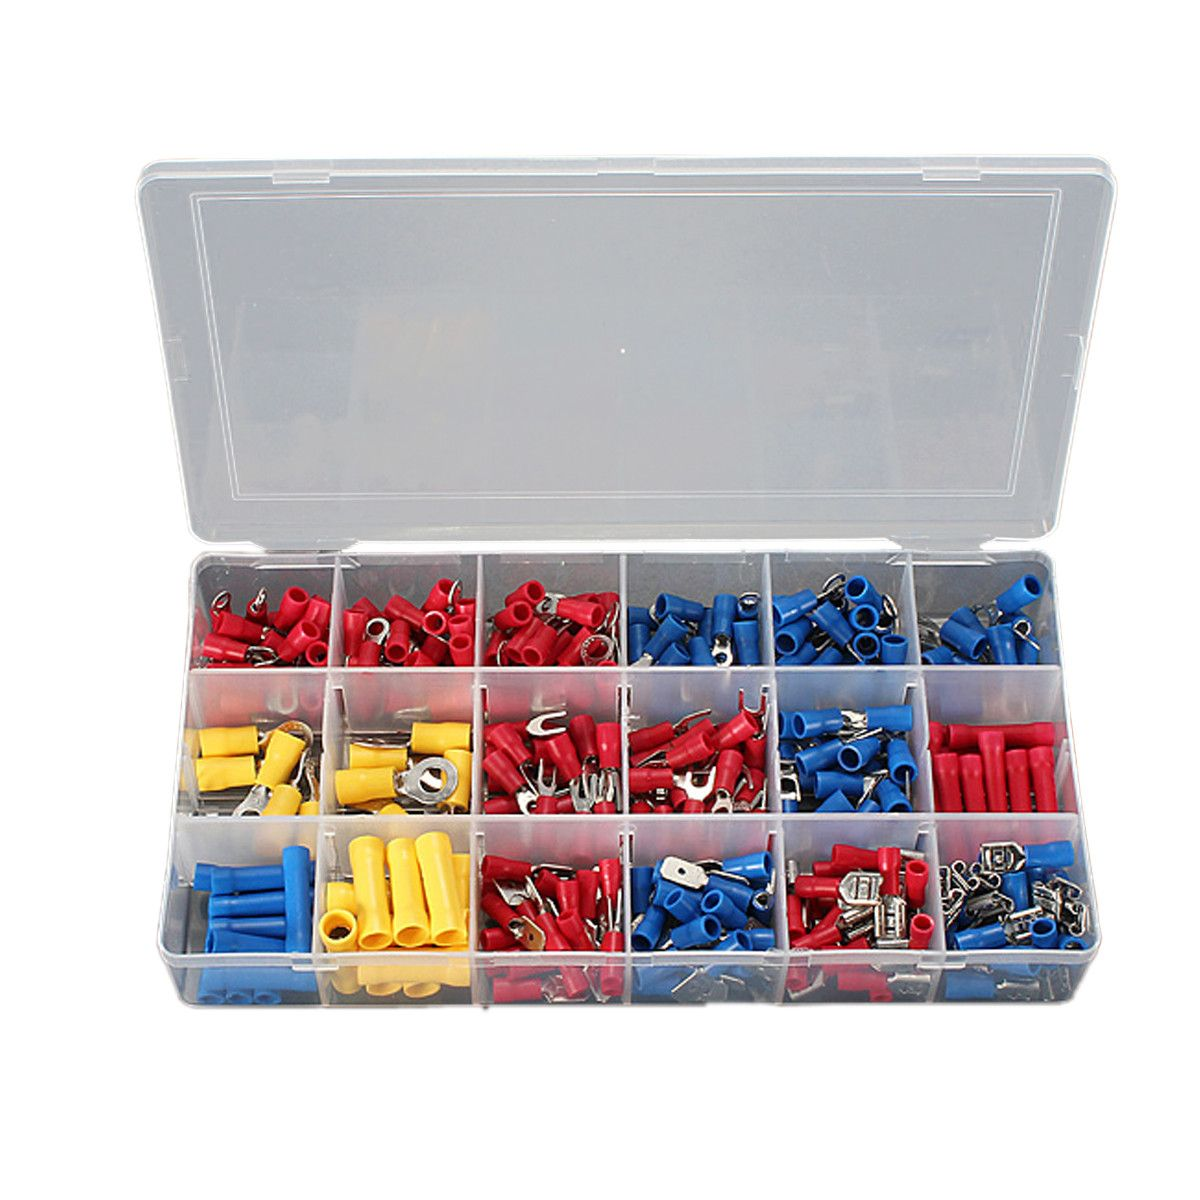 300pcs Insulated Electrical Wire Terminals Crimp Connector Spade Kits Electrical Wiring Electricity Wire Connectors